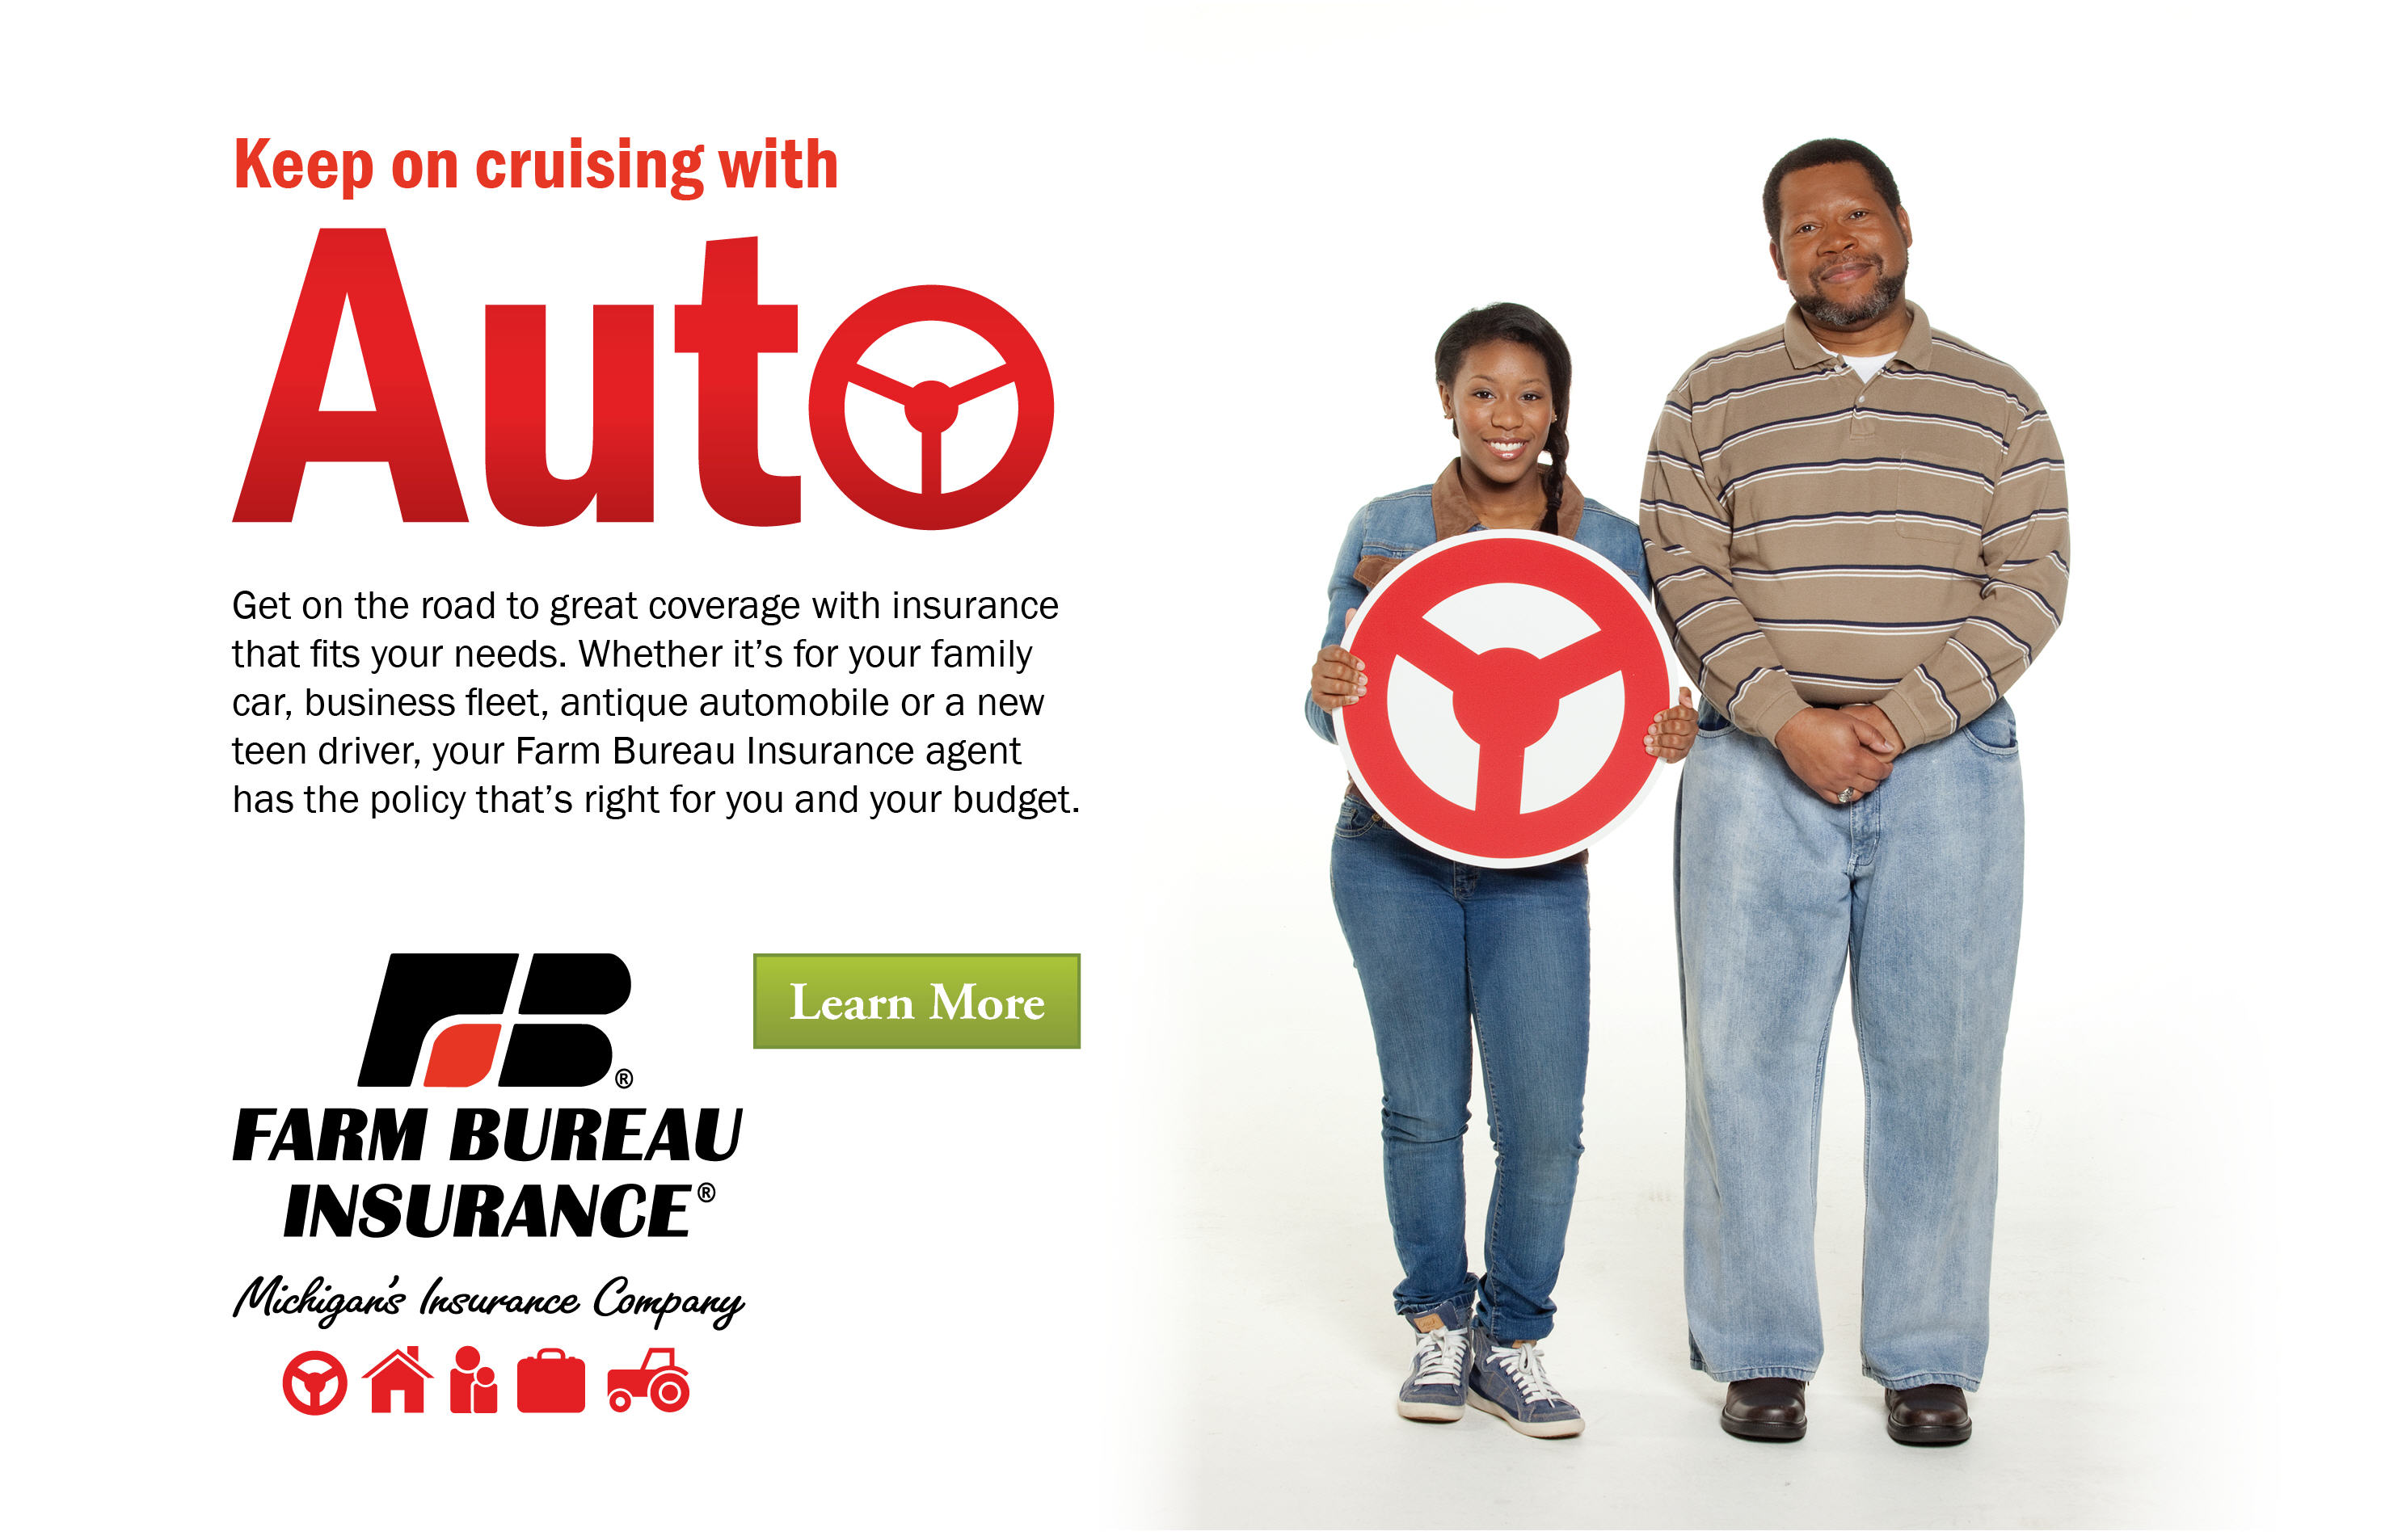 Keep on cruising with auto insurance.